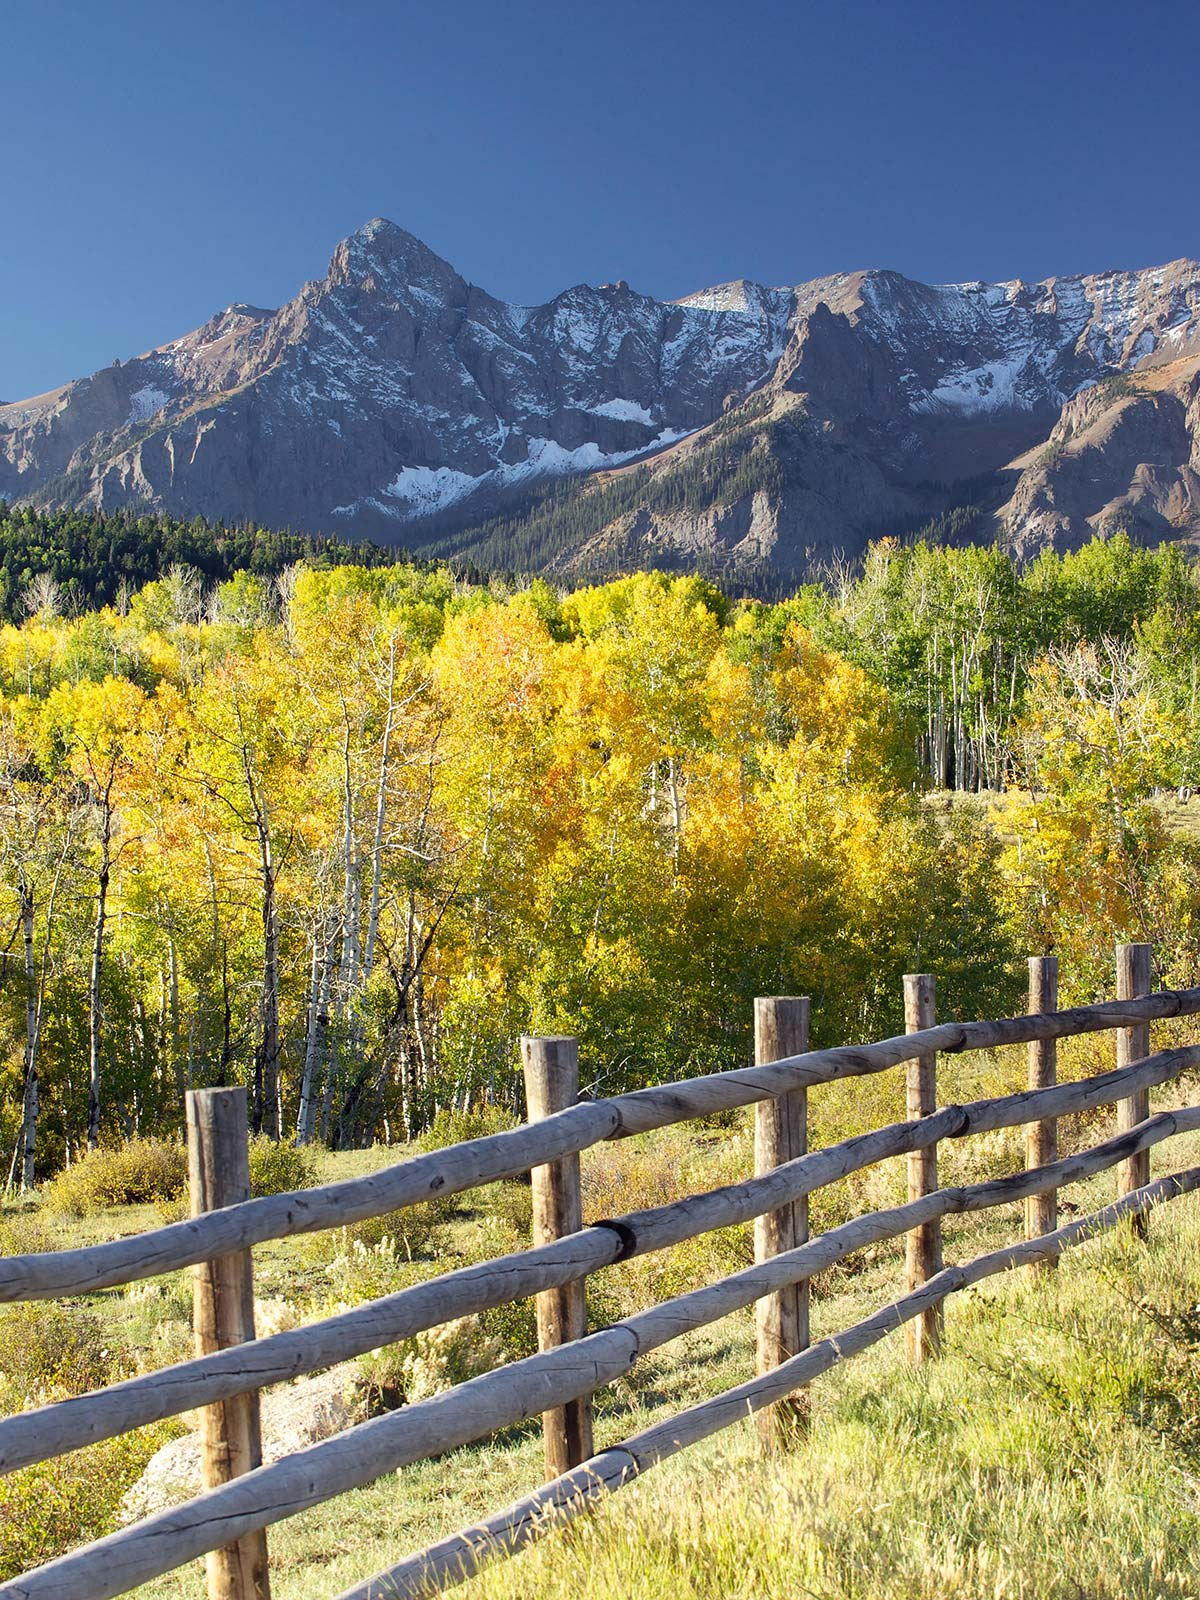 Fall colors and a fence in front of Colorado Rocky mountain range